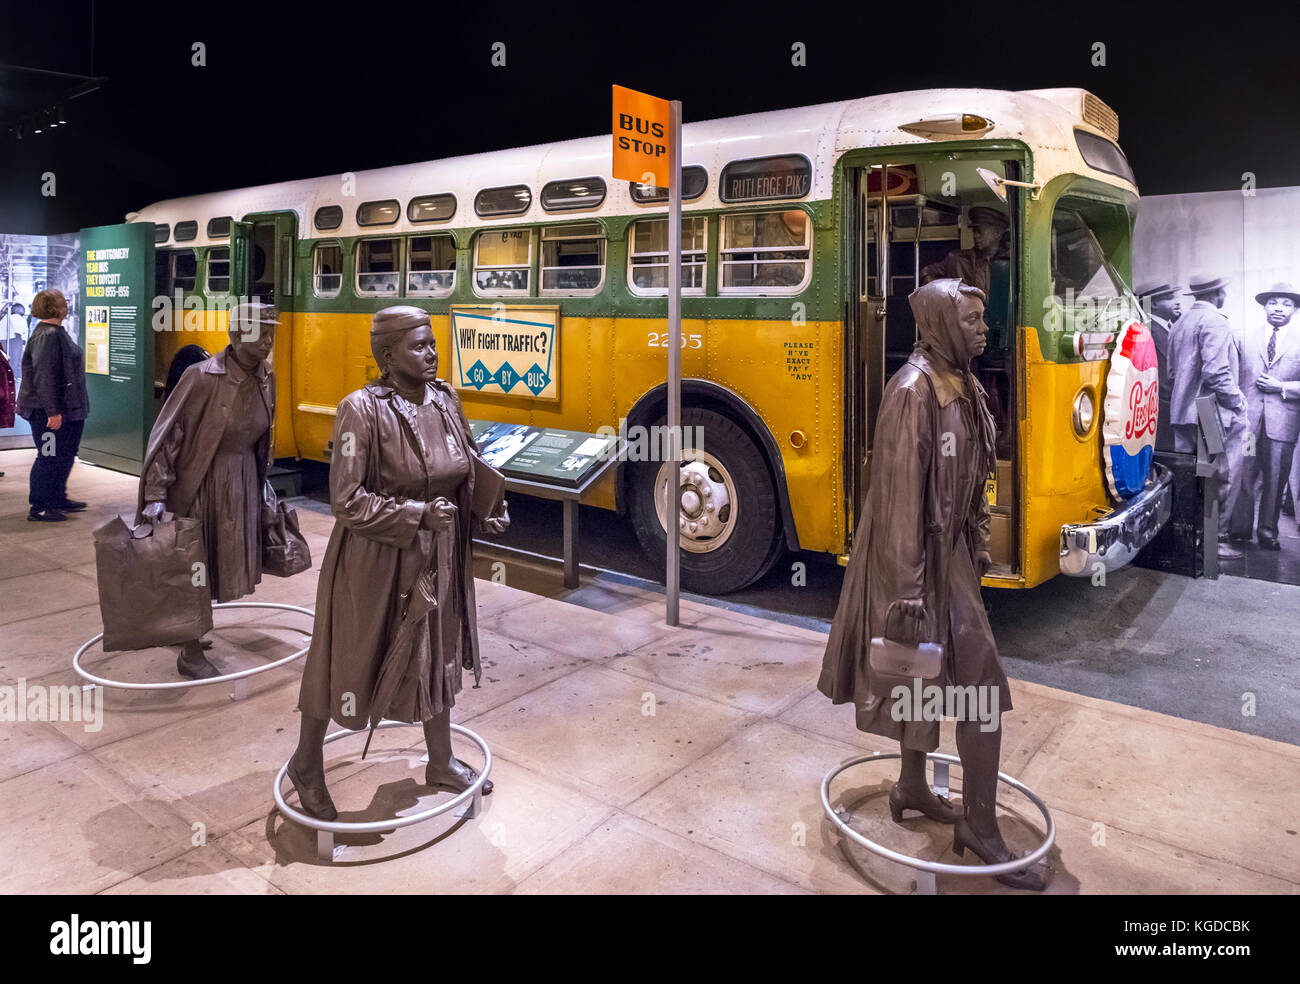 montgomery bus boycott Newly discovered documents that were tucked away and almost forgotten in a family's attic for decades show the financial impact of the montgomery bus boycott.